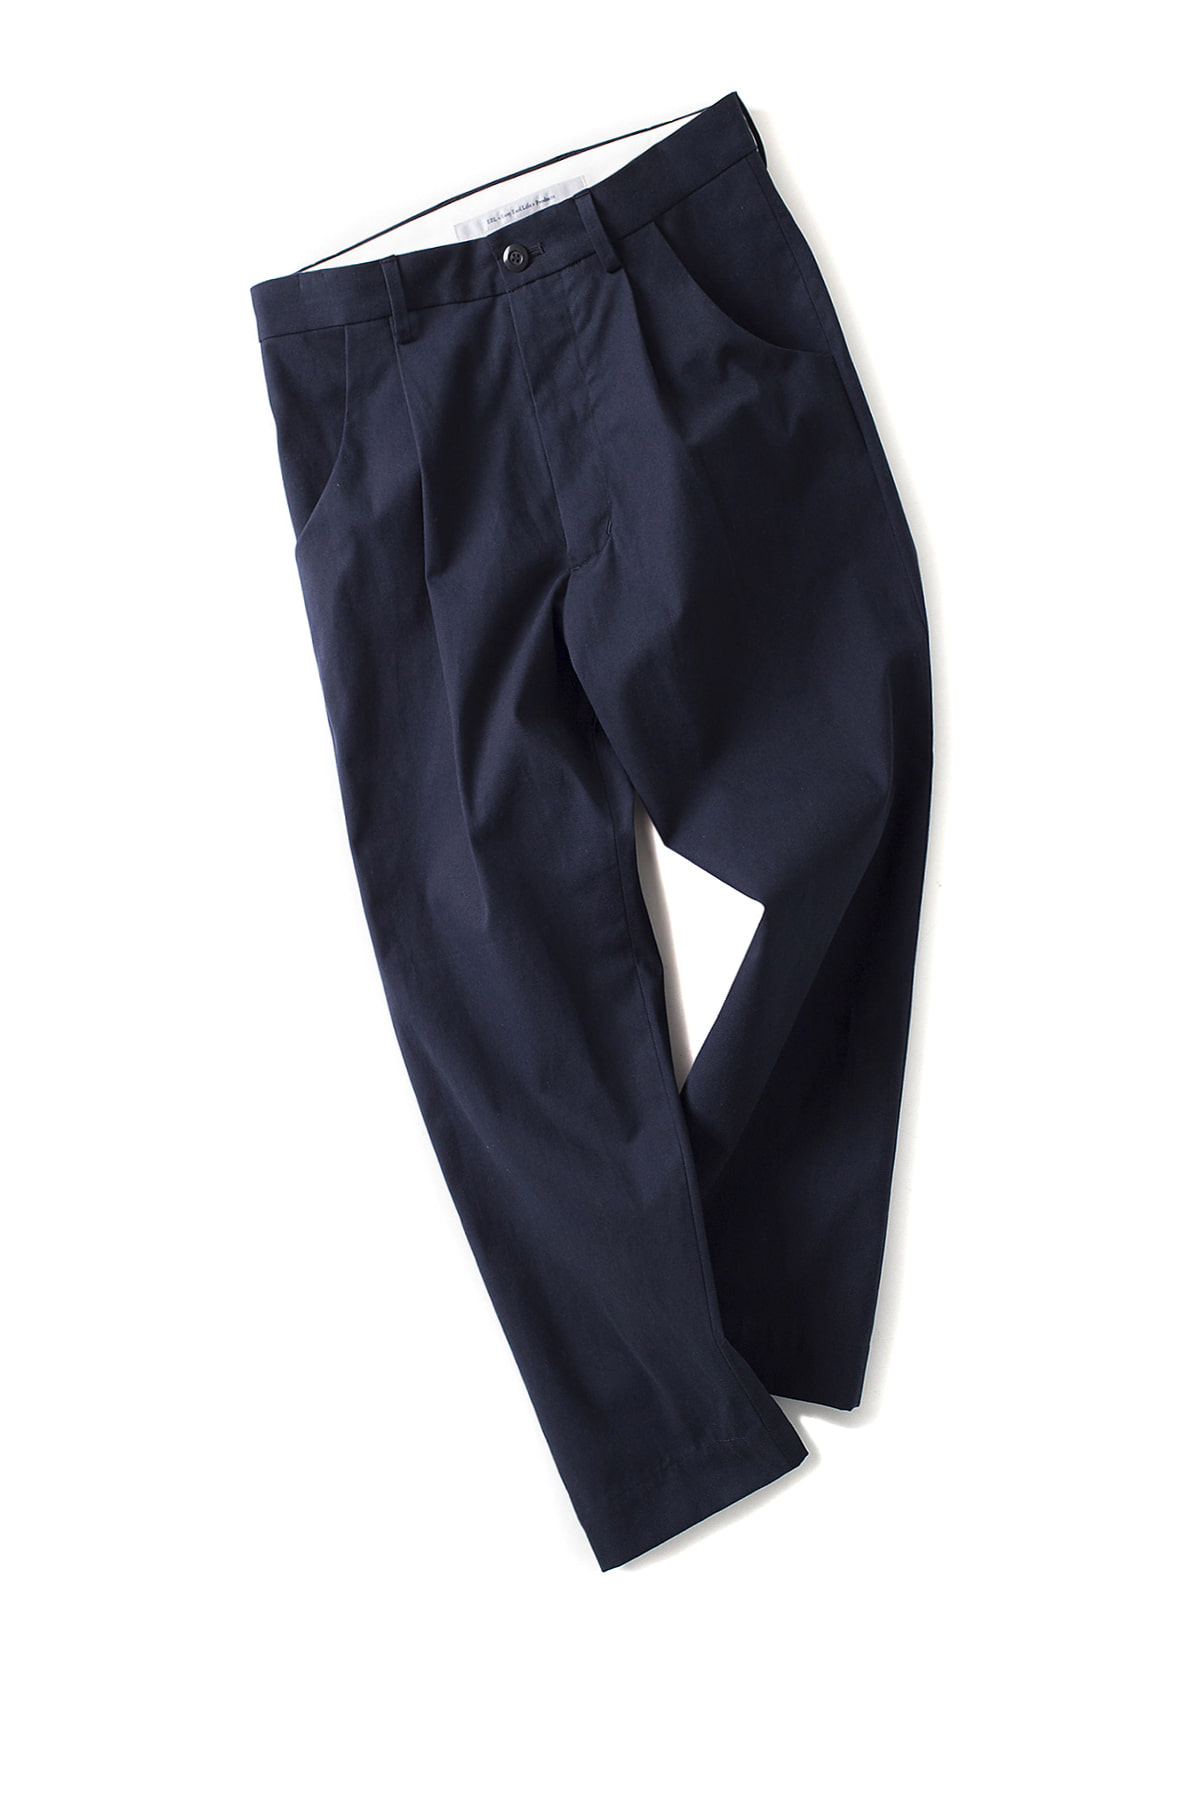 EEL : Stick Pants (Navy)